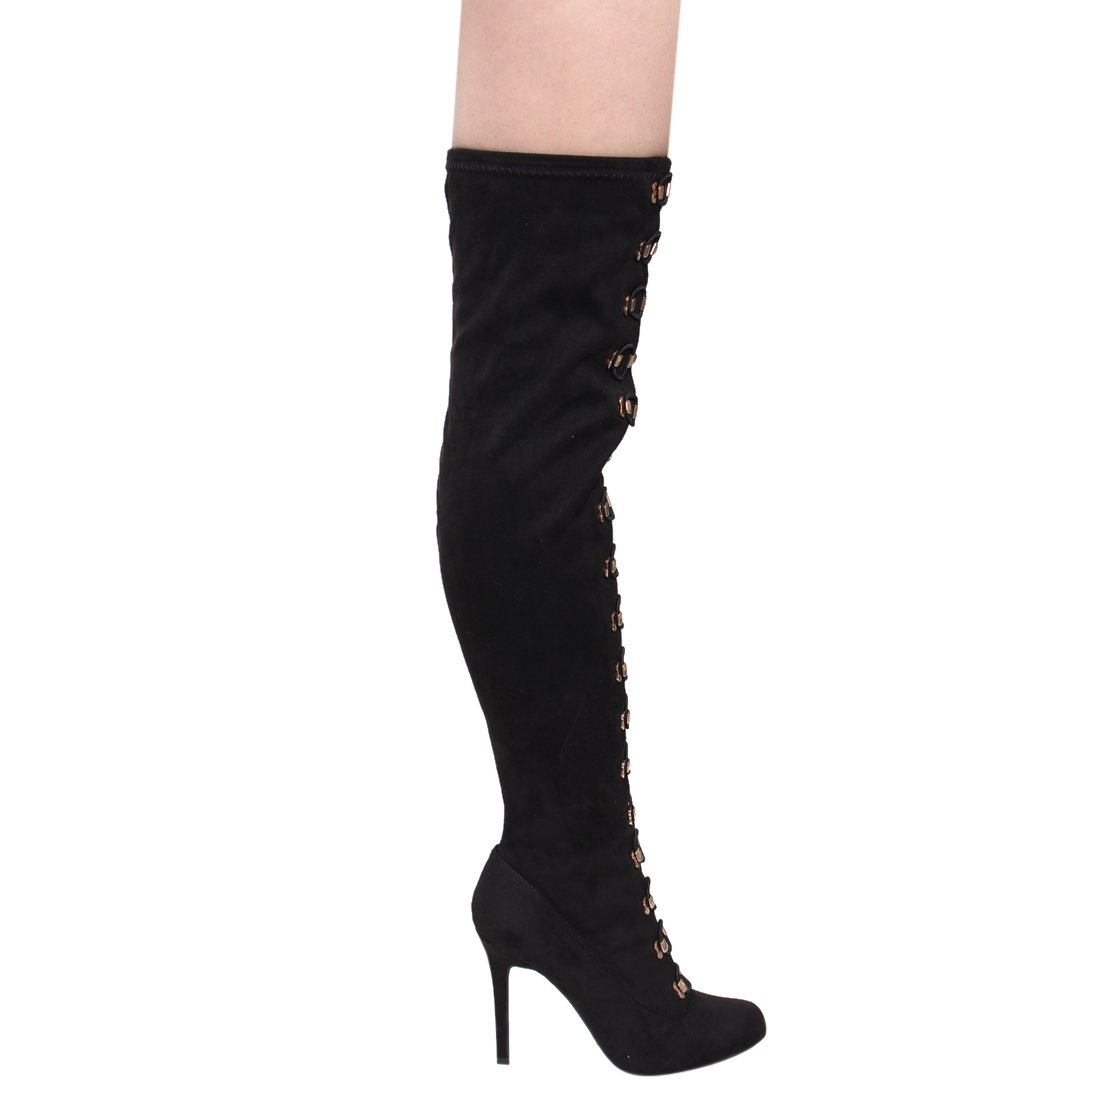 Anne Michelle Military Combat Inspired Lace Up Corset High Heel Over The Knee Boots